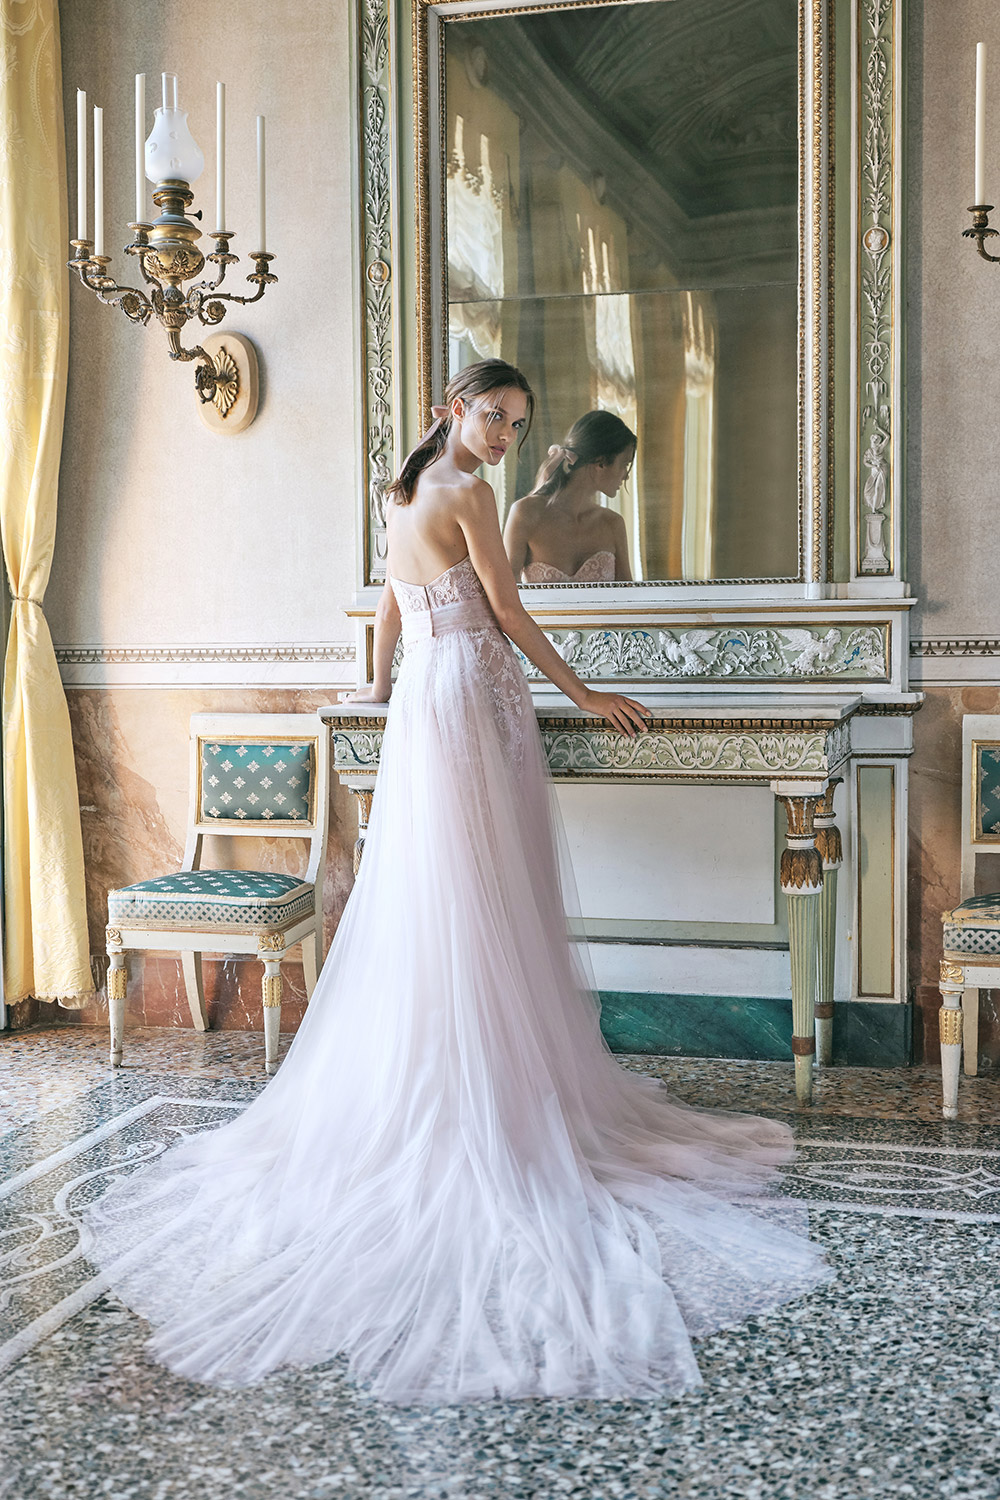 Venetian - Monique Lhuillier Fall 2020 Bridal Collection. www.theweddingnotebook.com